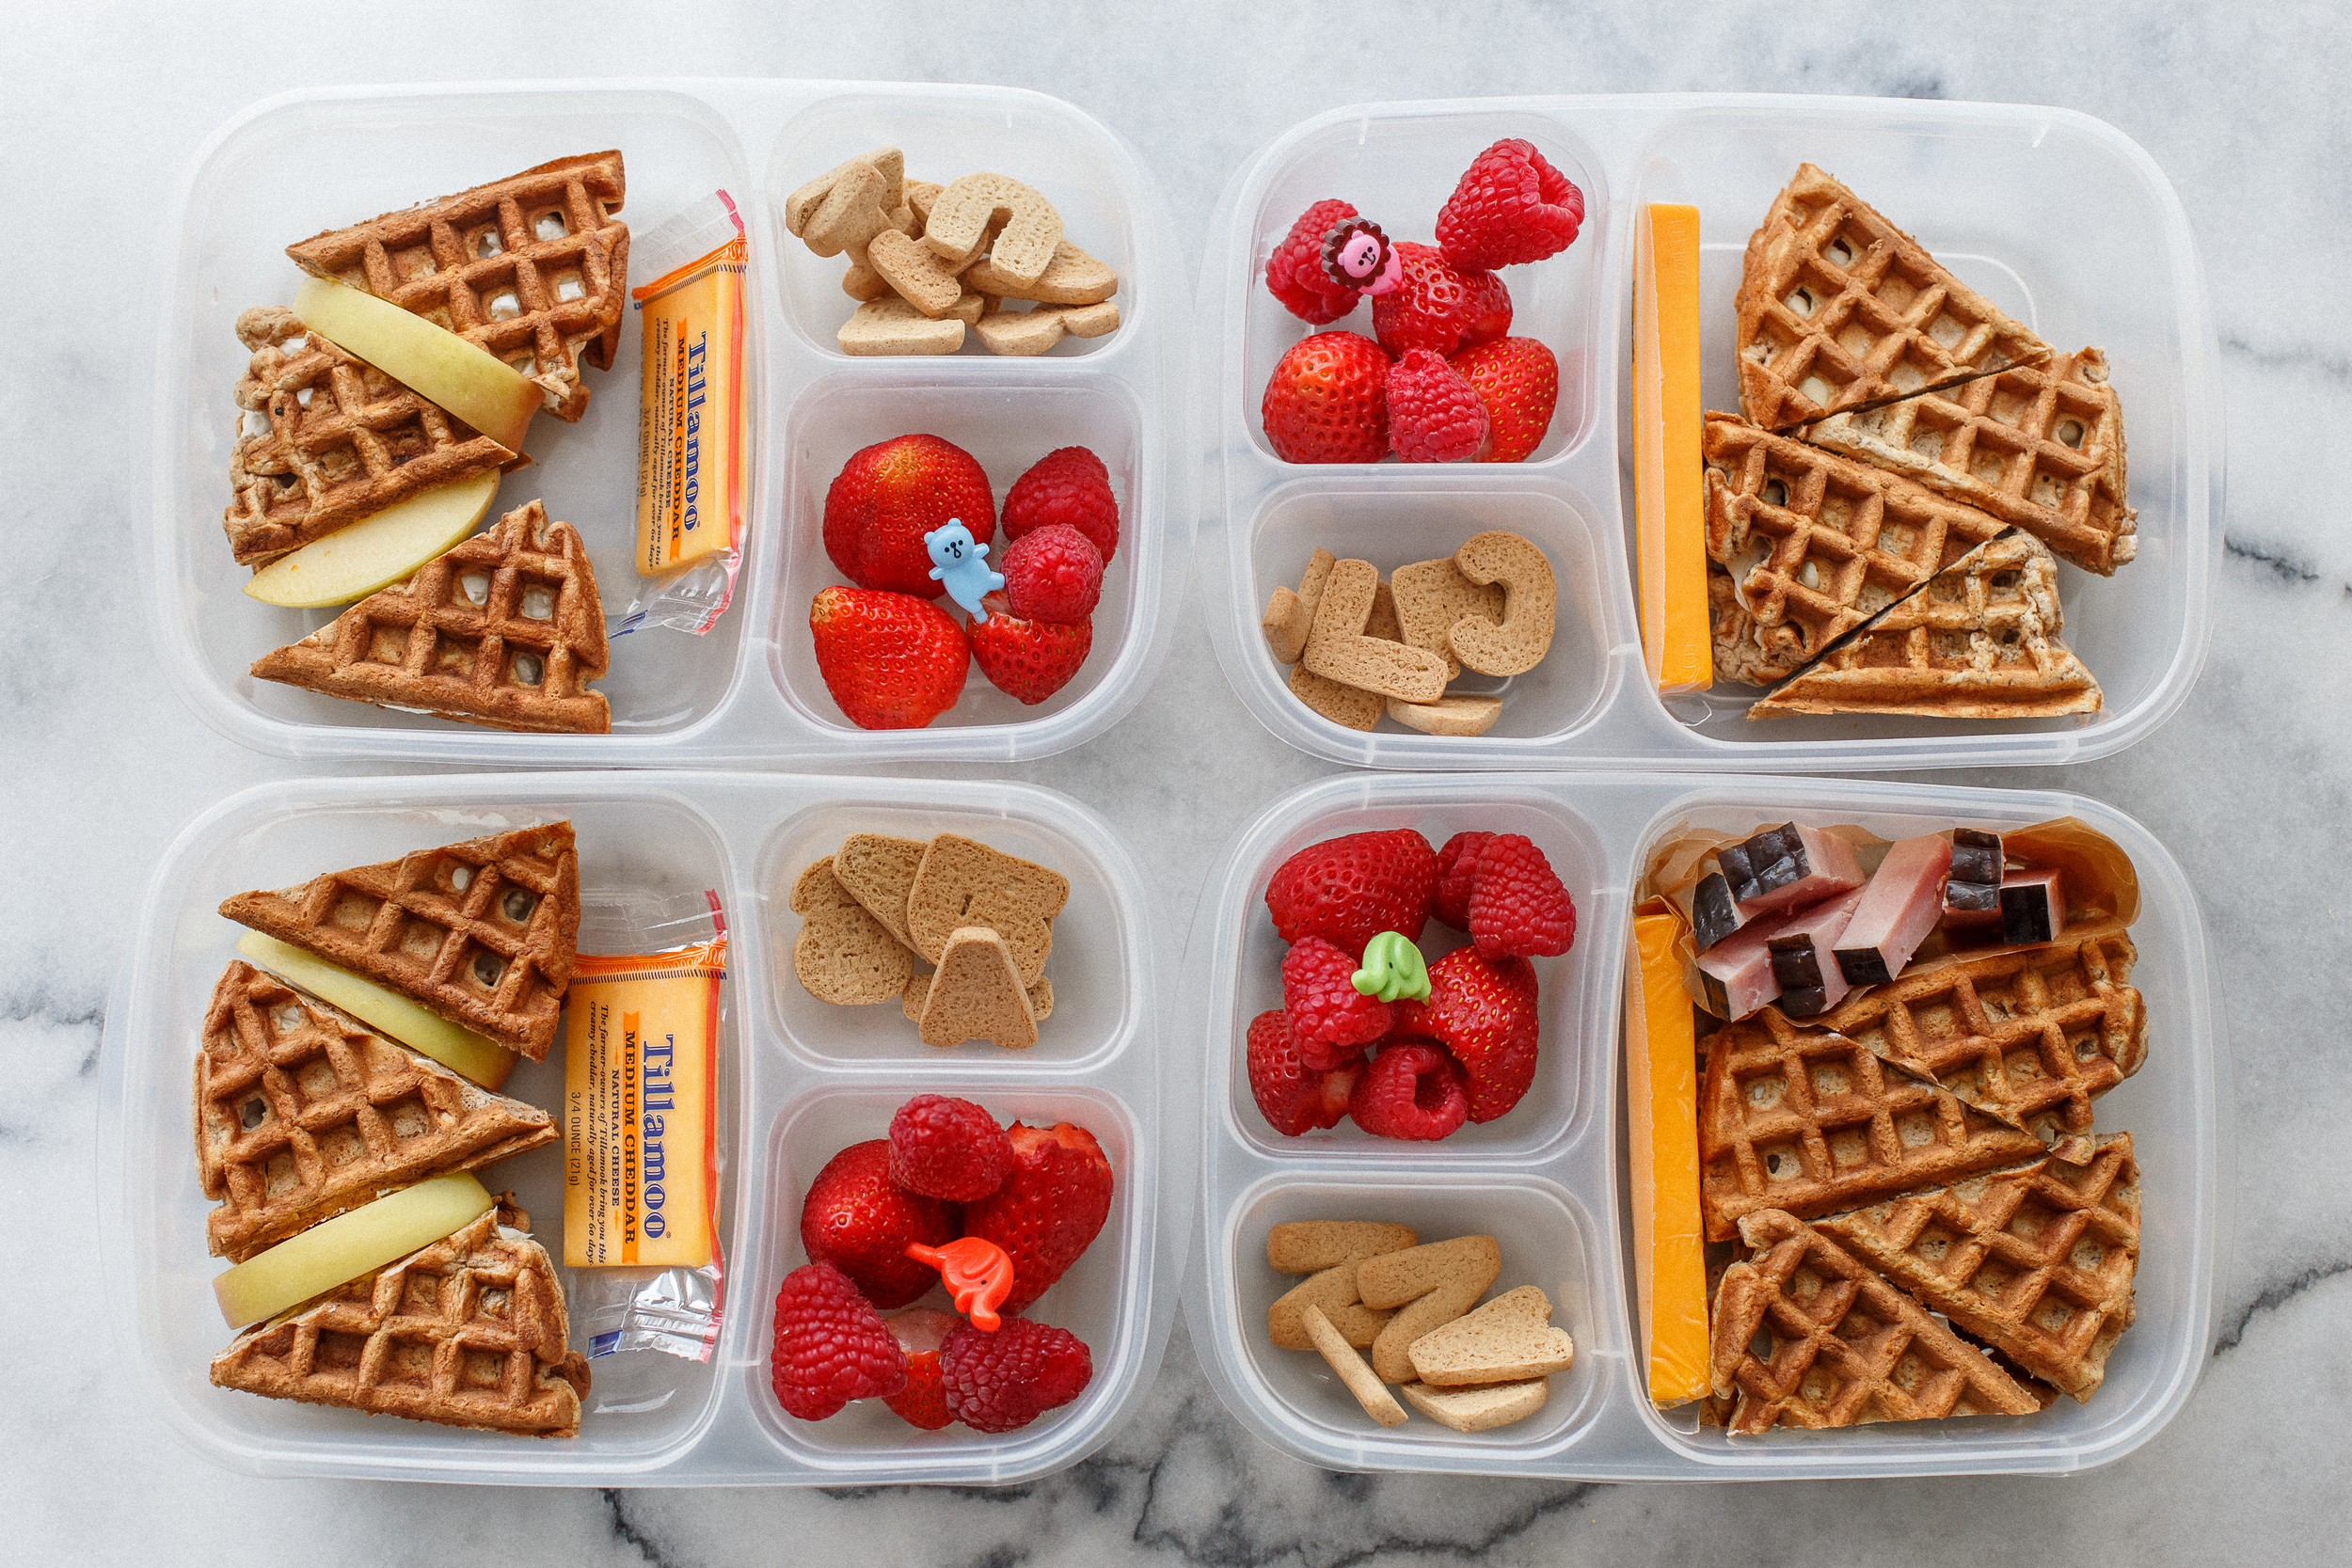 Wednesday is breakfast for lunch day at our house, and it's often the most popular lunch of the week. This one was no exception. Waffle sandwiches! Homemade waffles, I used whole wheat flour, oats, ground flax, extra egg, homemade almond milk, and just a little sugar - so they're pretty healthy. Three are spread with cream cheese, and one child has butter. They also have a cheddar cheese, berries, and some little cinnamon letter cookies to spell our their name. The boy has a little ham, and two of the girls have a couple slices of apple.